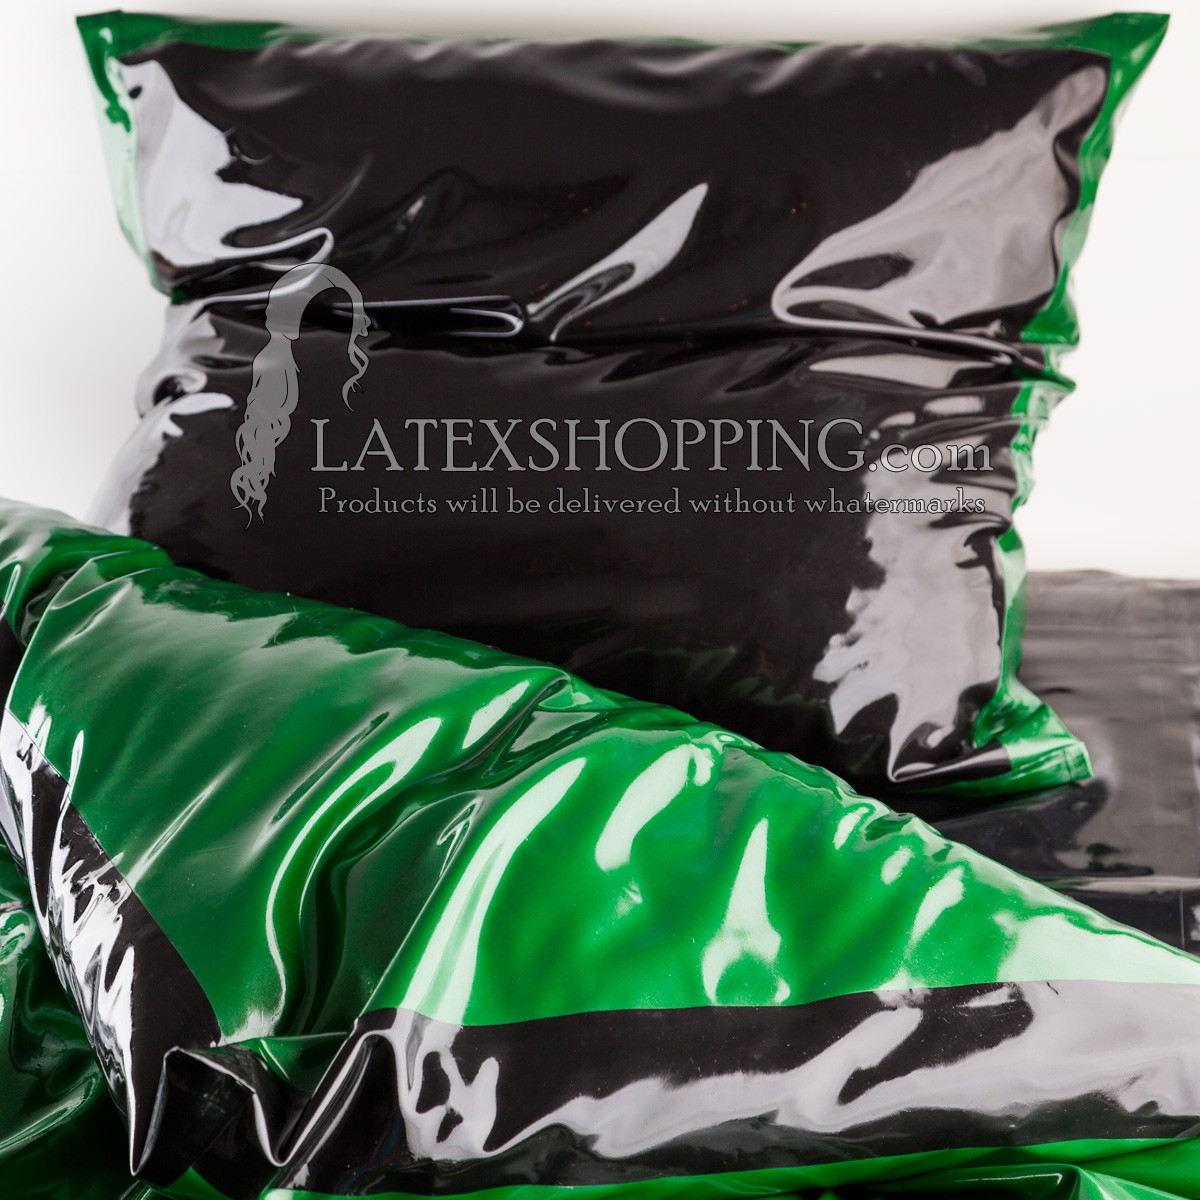 Latex Bedding Latex Fashion Shopping